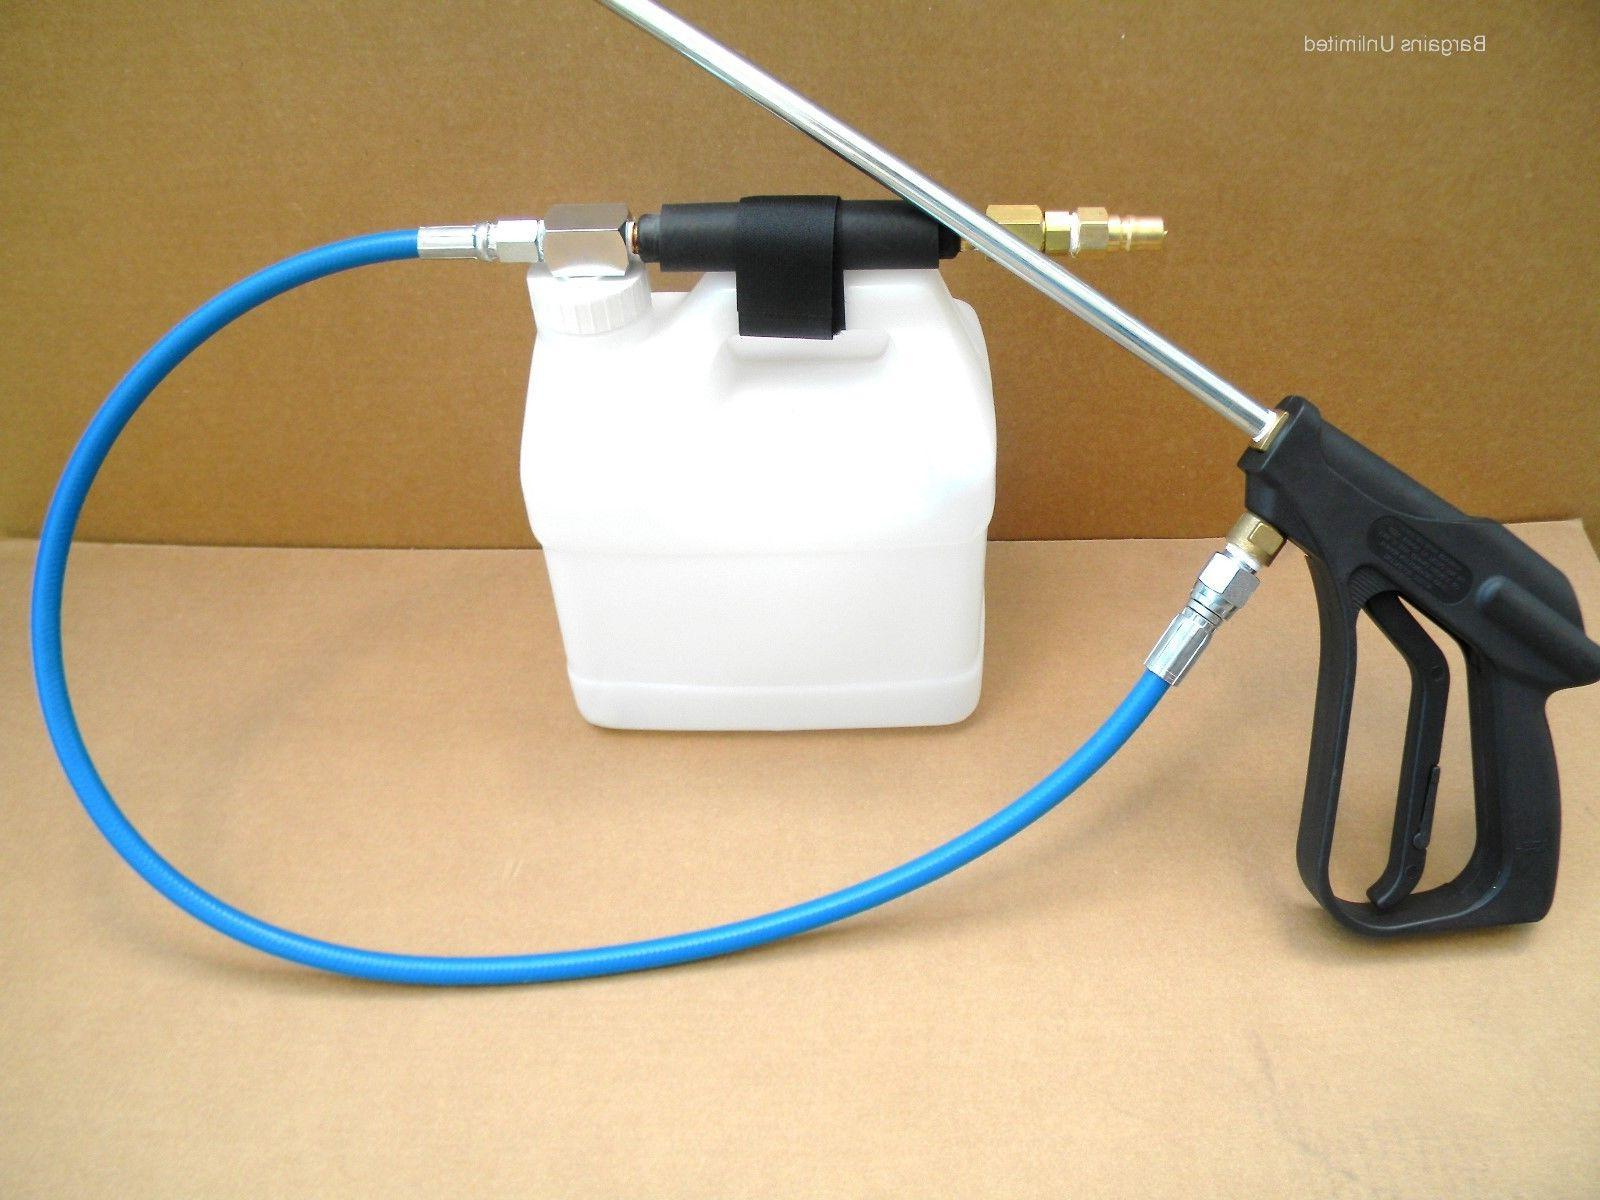 carpet cleaning high pressure in line sprayer